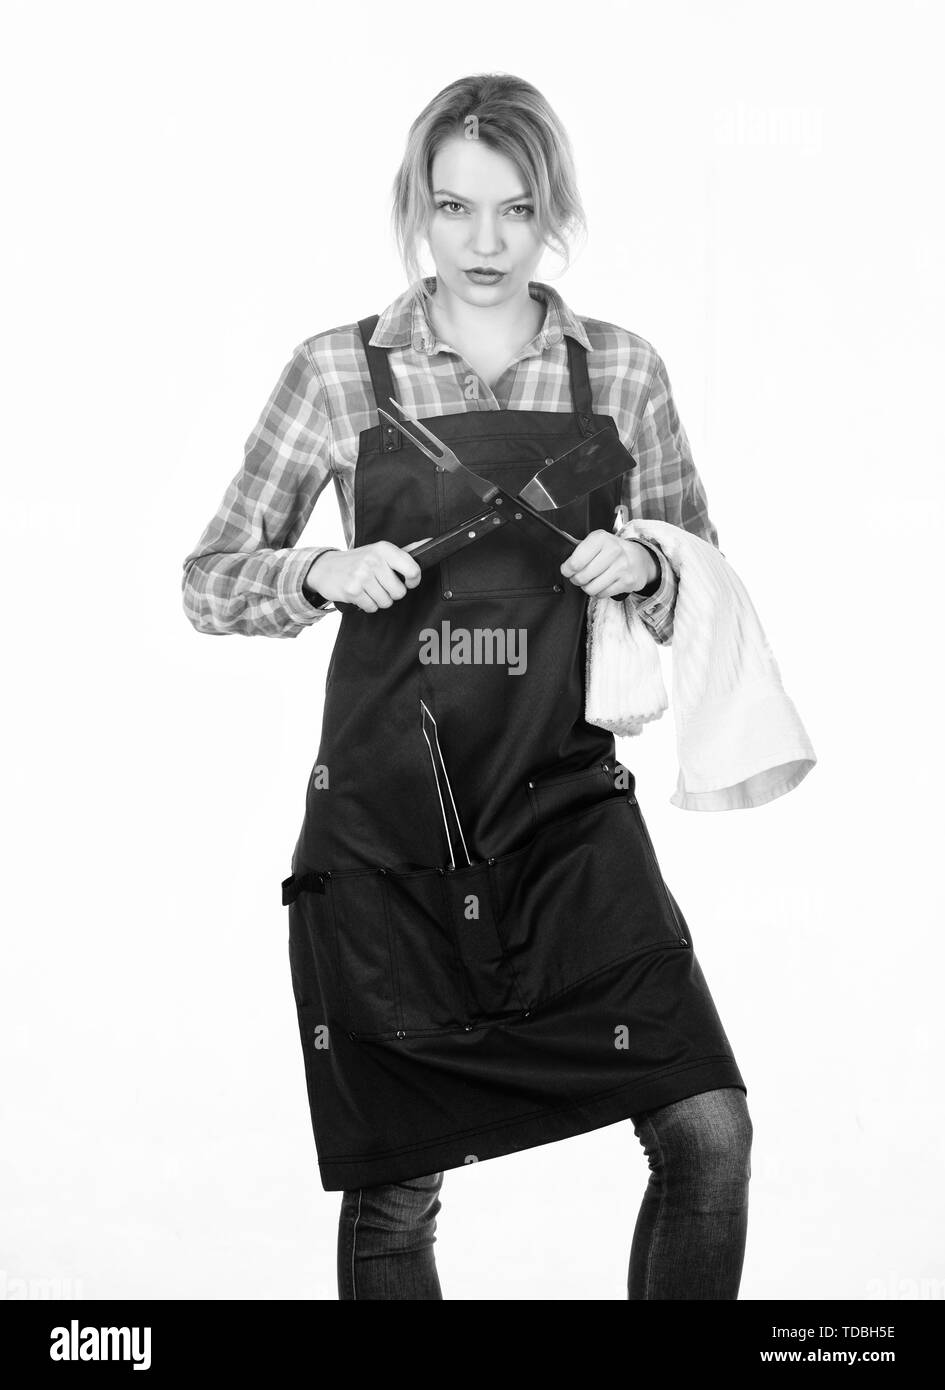 She loves her job. Pretty girl in chef apron. Preparation and culinary. Woman hold kitchen utensils. Tools for roasting meat outdoor. Picnic barbecue. food cooking recipe. Family weekend. - Stock Image